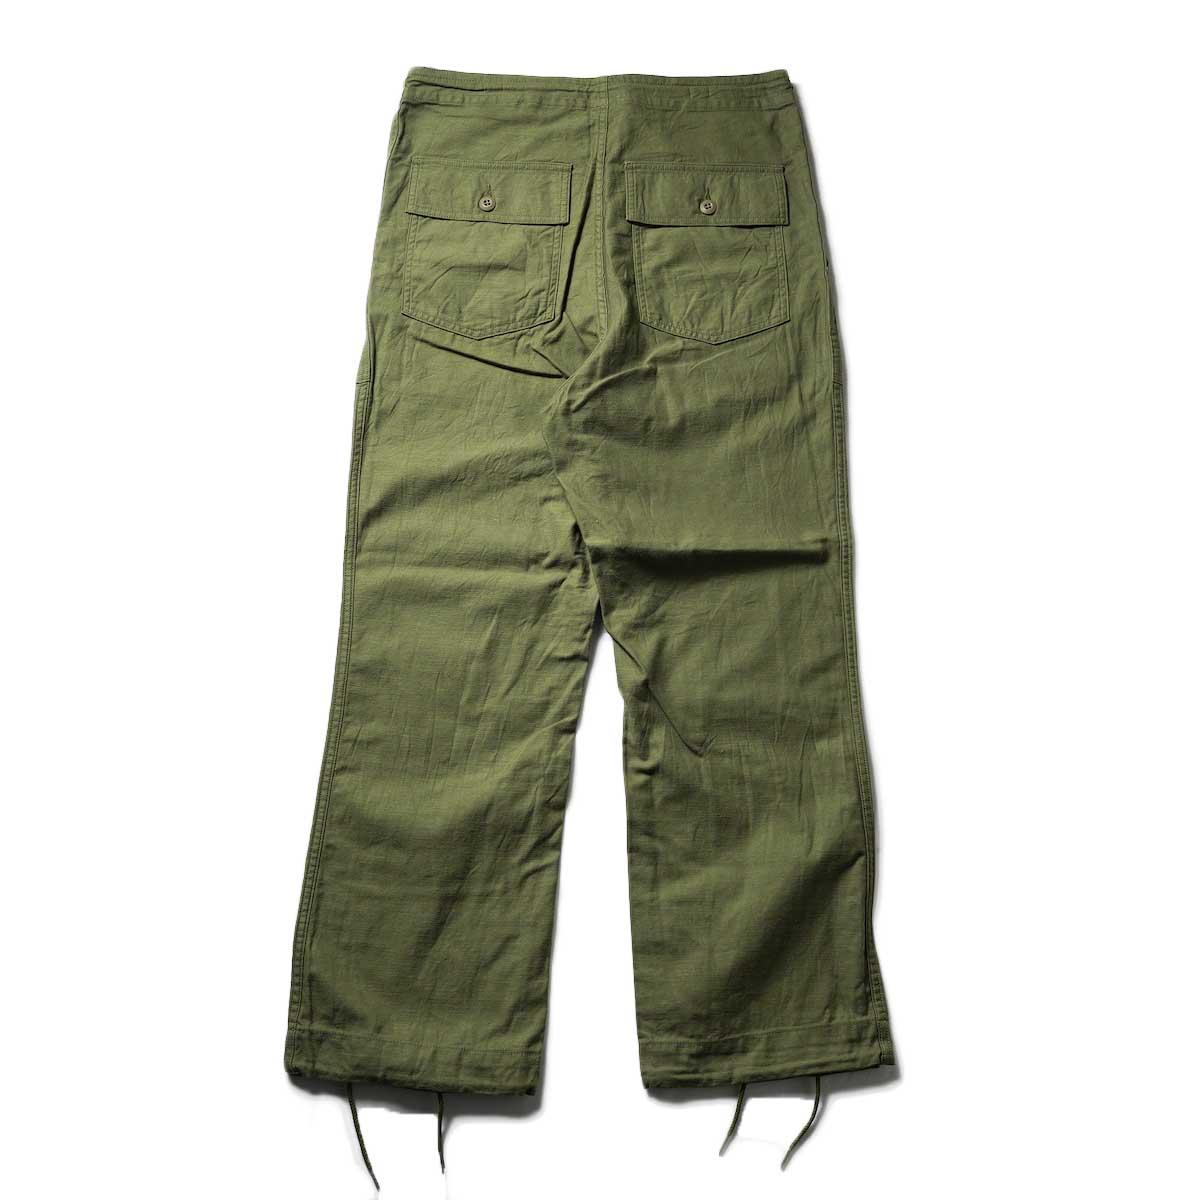 Needles / STRING FATIGUE PANT - BACK SATEEN (Olive)背面